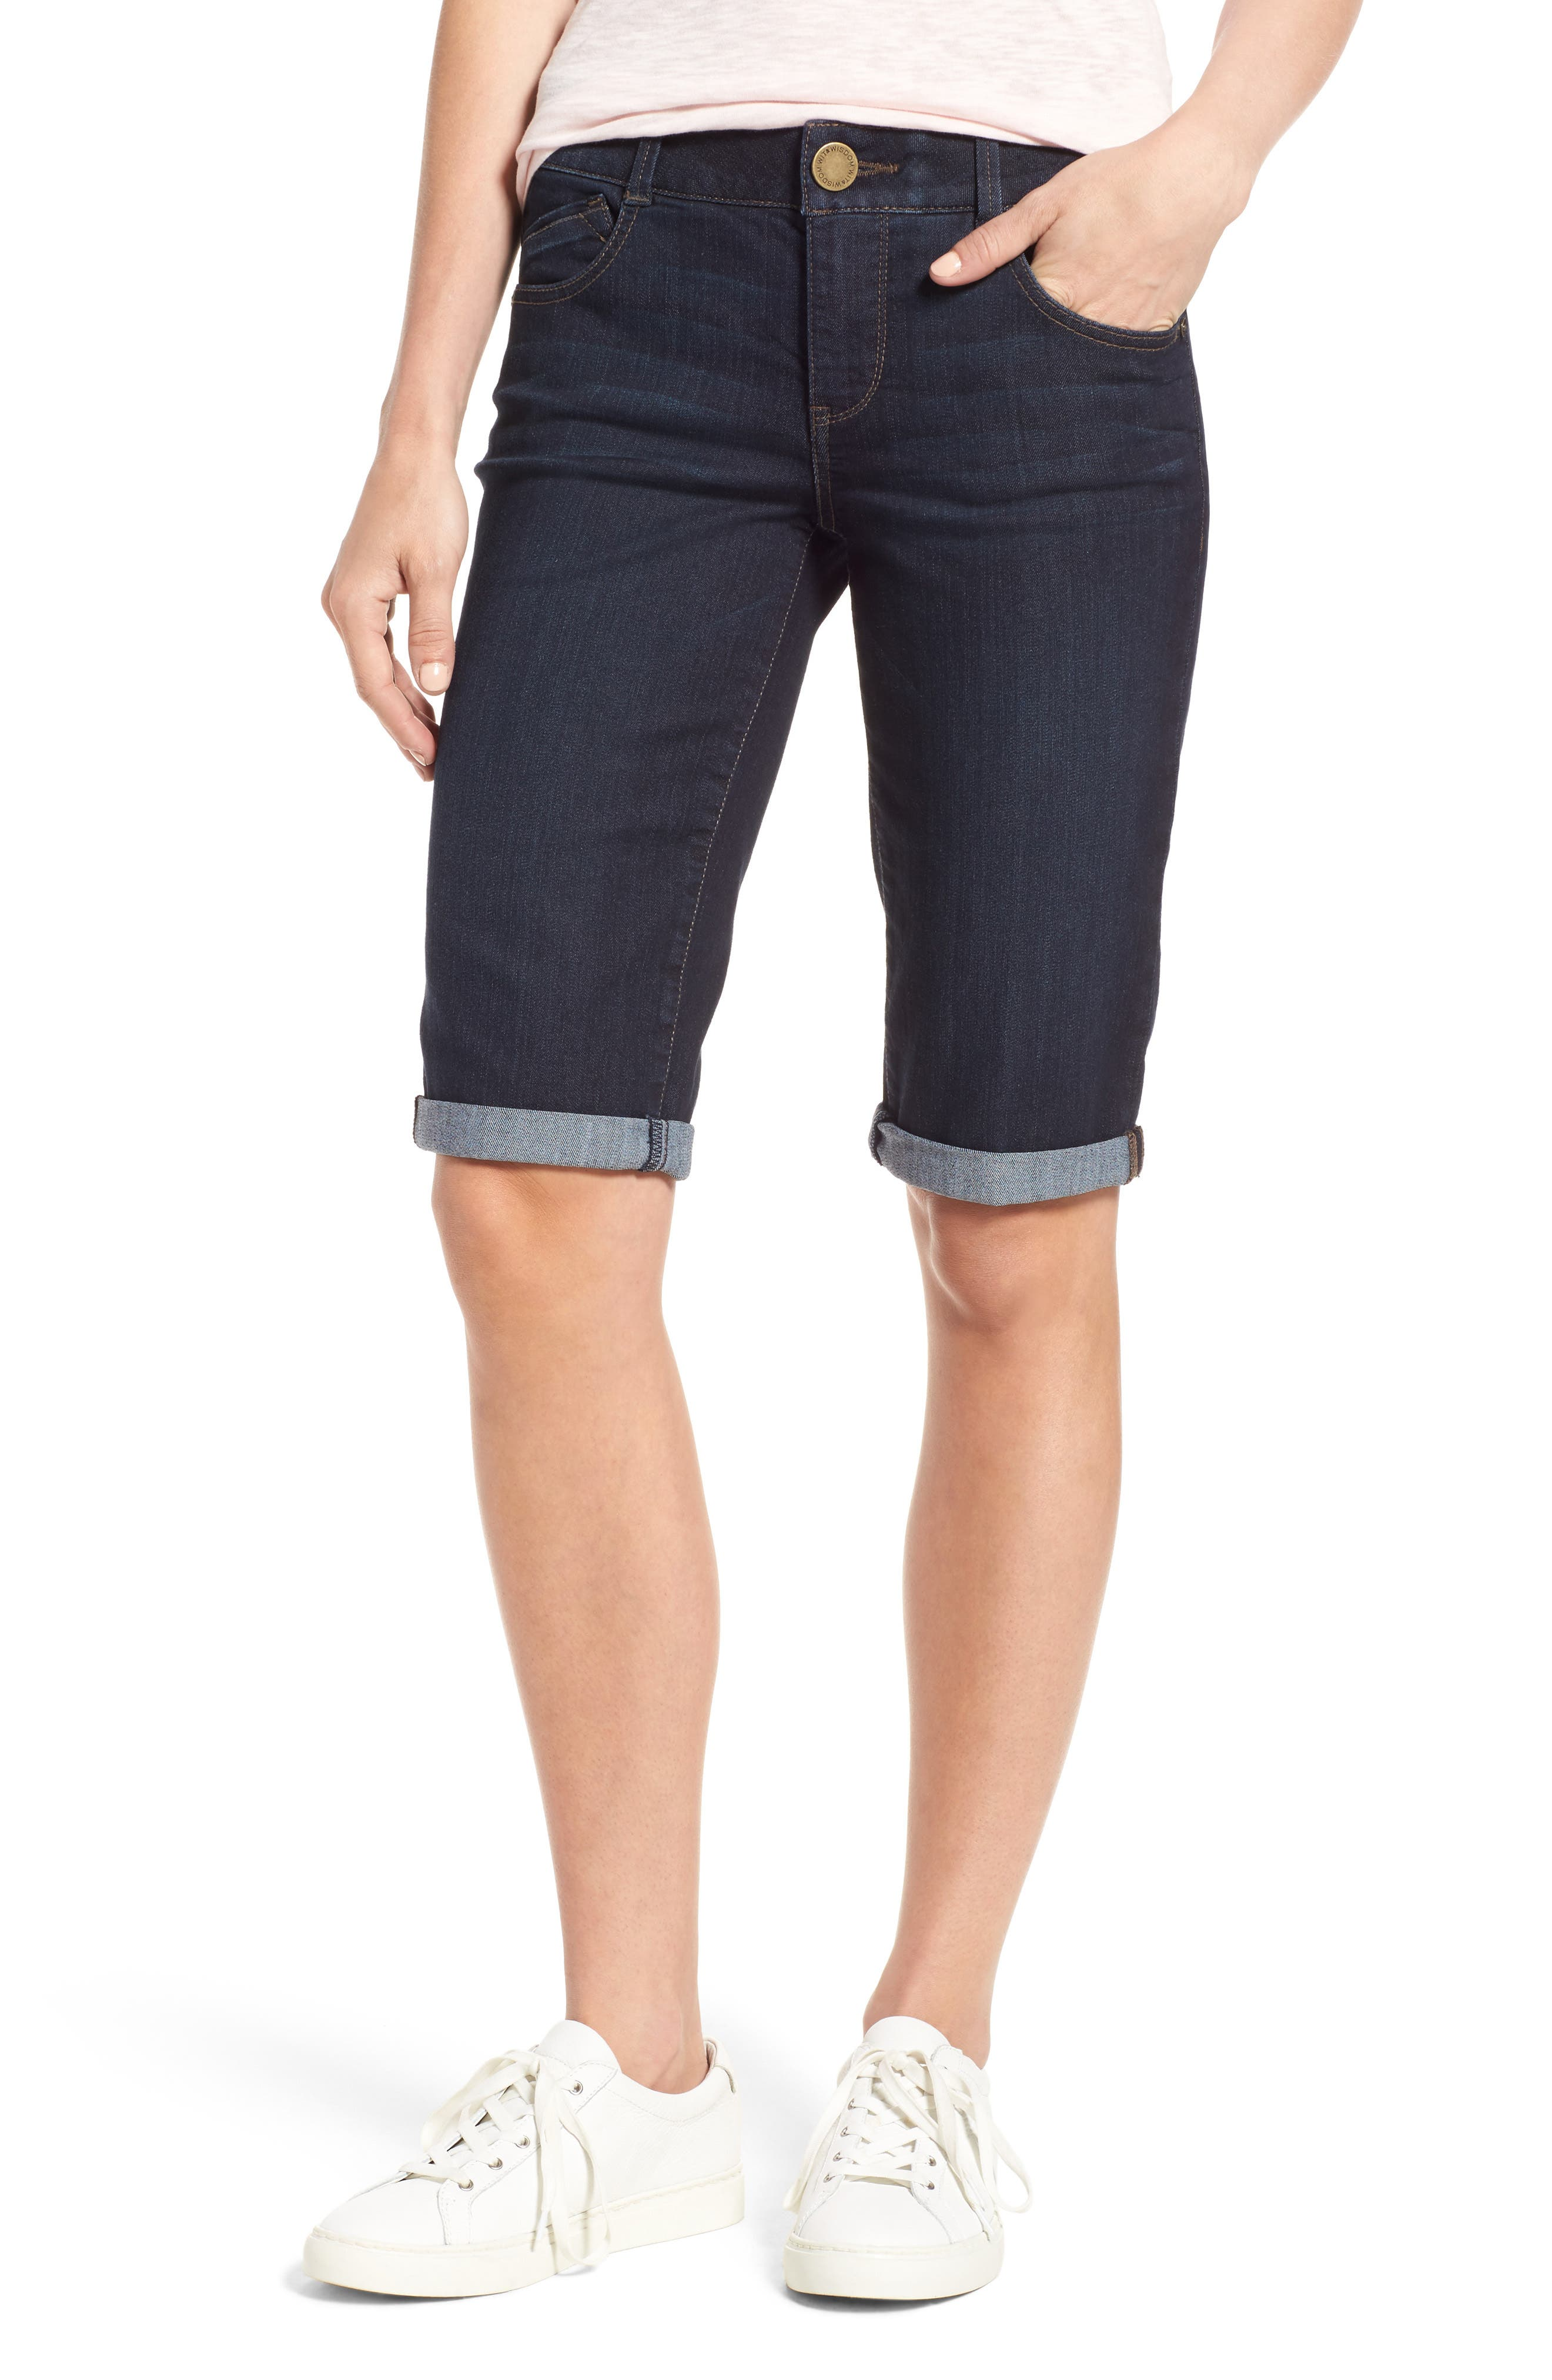 Ab-solution Denim Bermuda Shorts,                         Main,                         color,